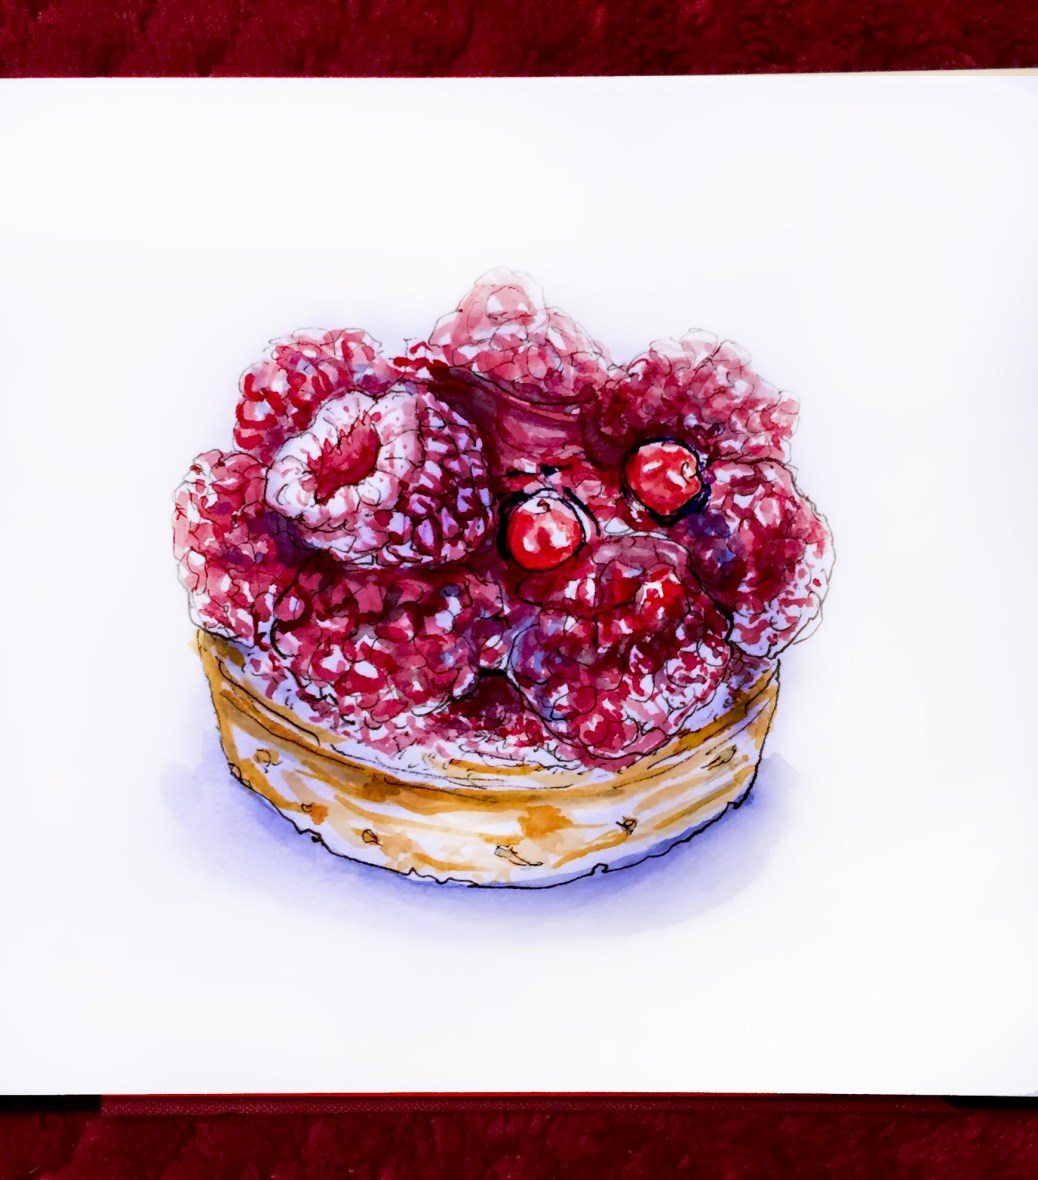 Day 26 - #WorldWatercolorGroup Tarte Aux Framboises Desserts Pastry Paris France Raspberry Tart